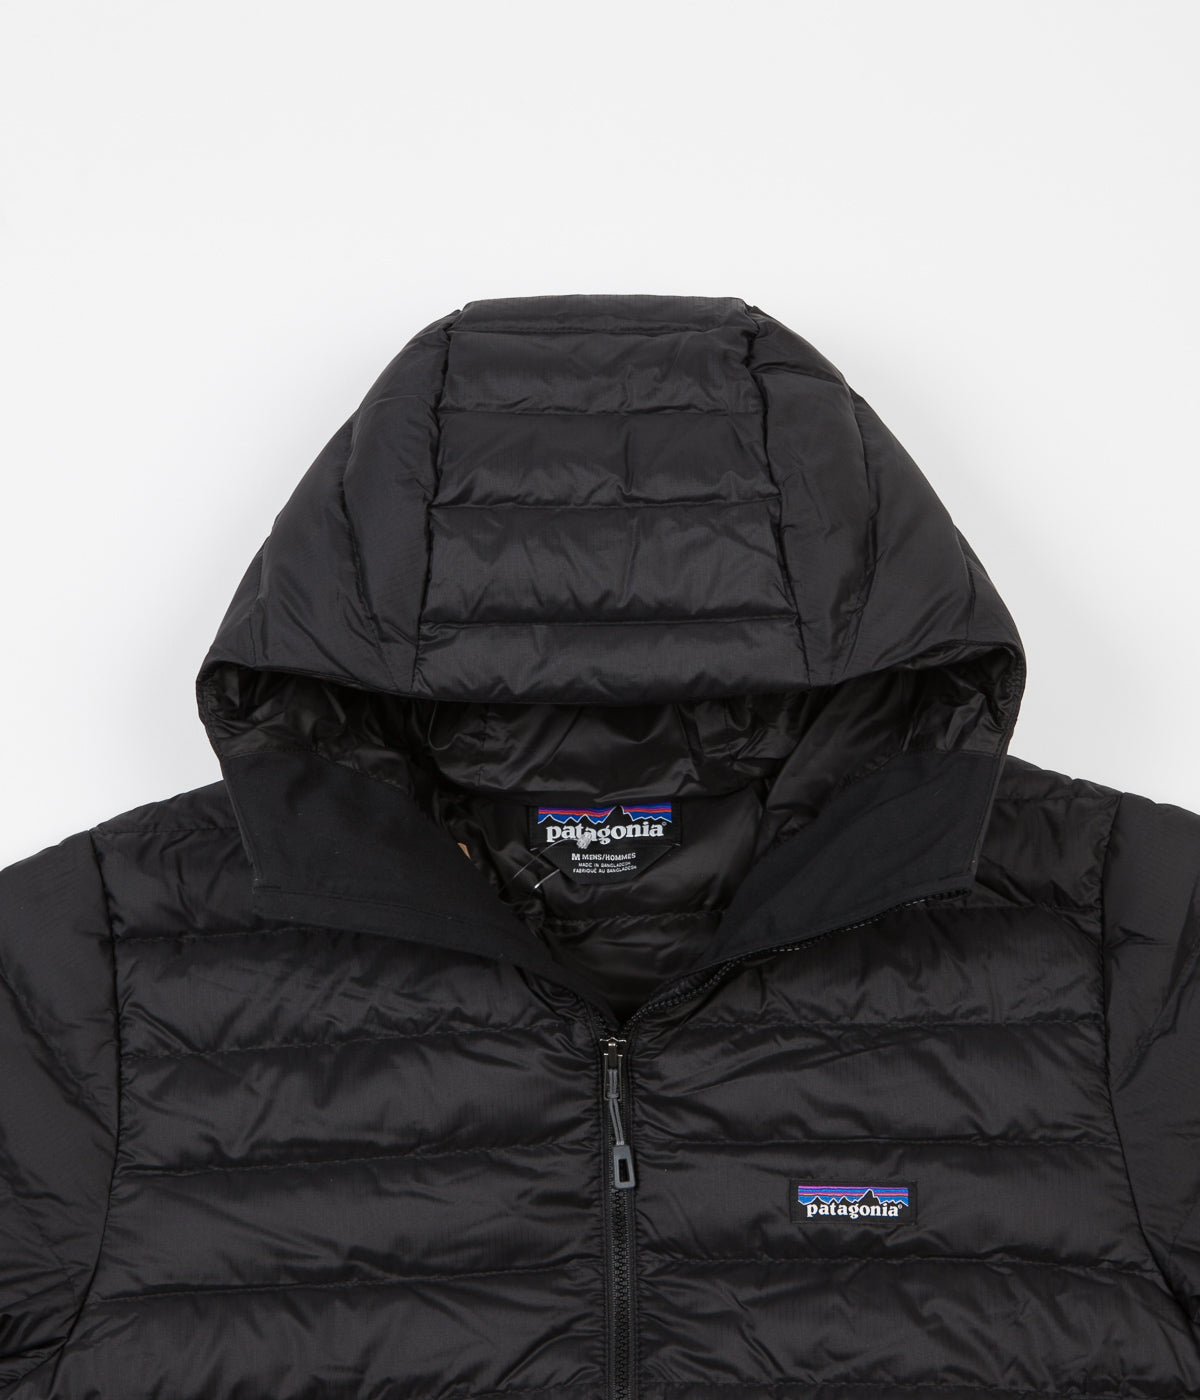 Patagonia Down Sweater Hooded Jacket Black Flatspot